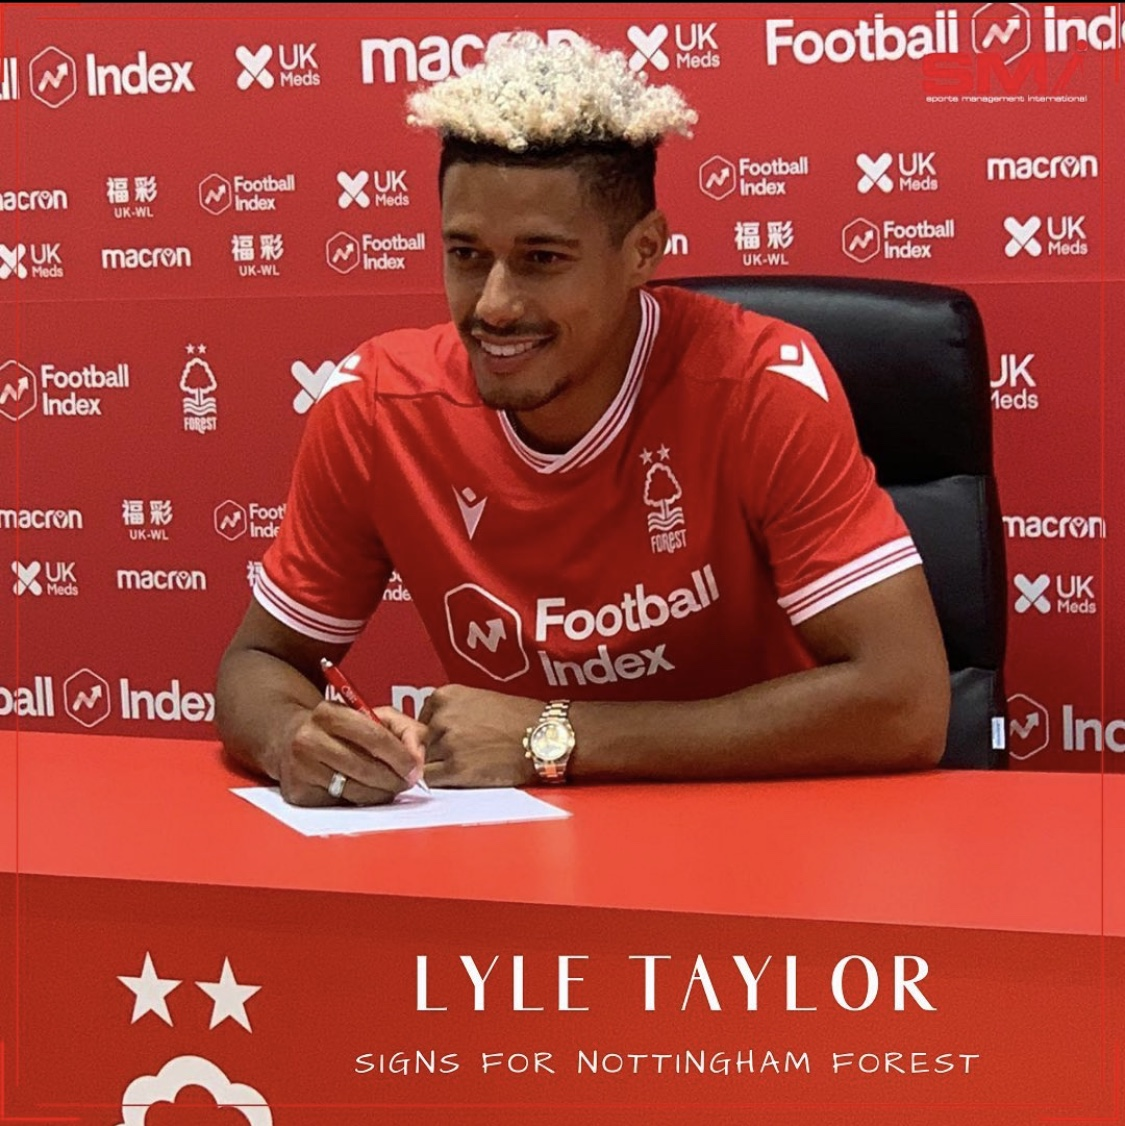 Lyle Taylor to Nottingham Forest